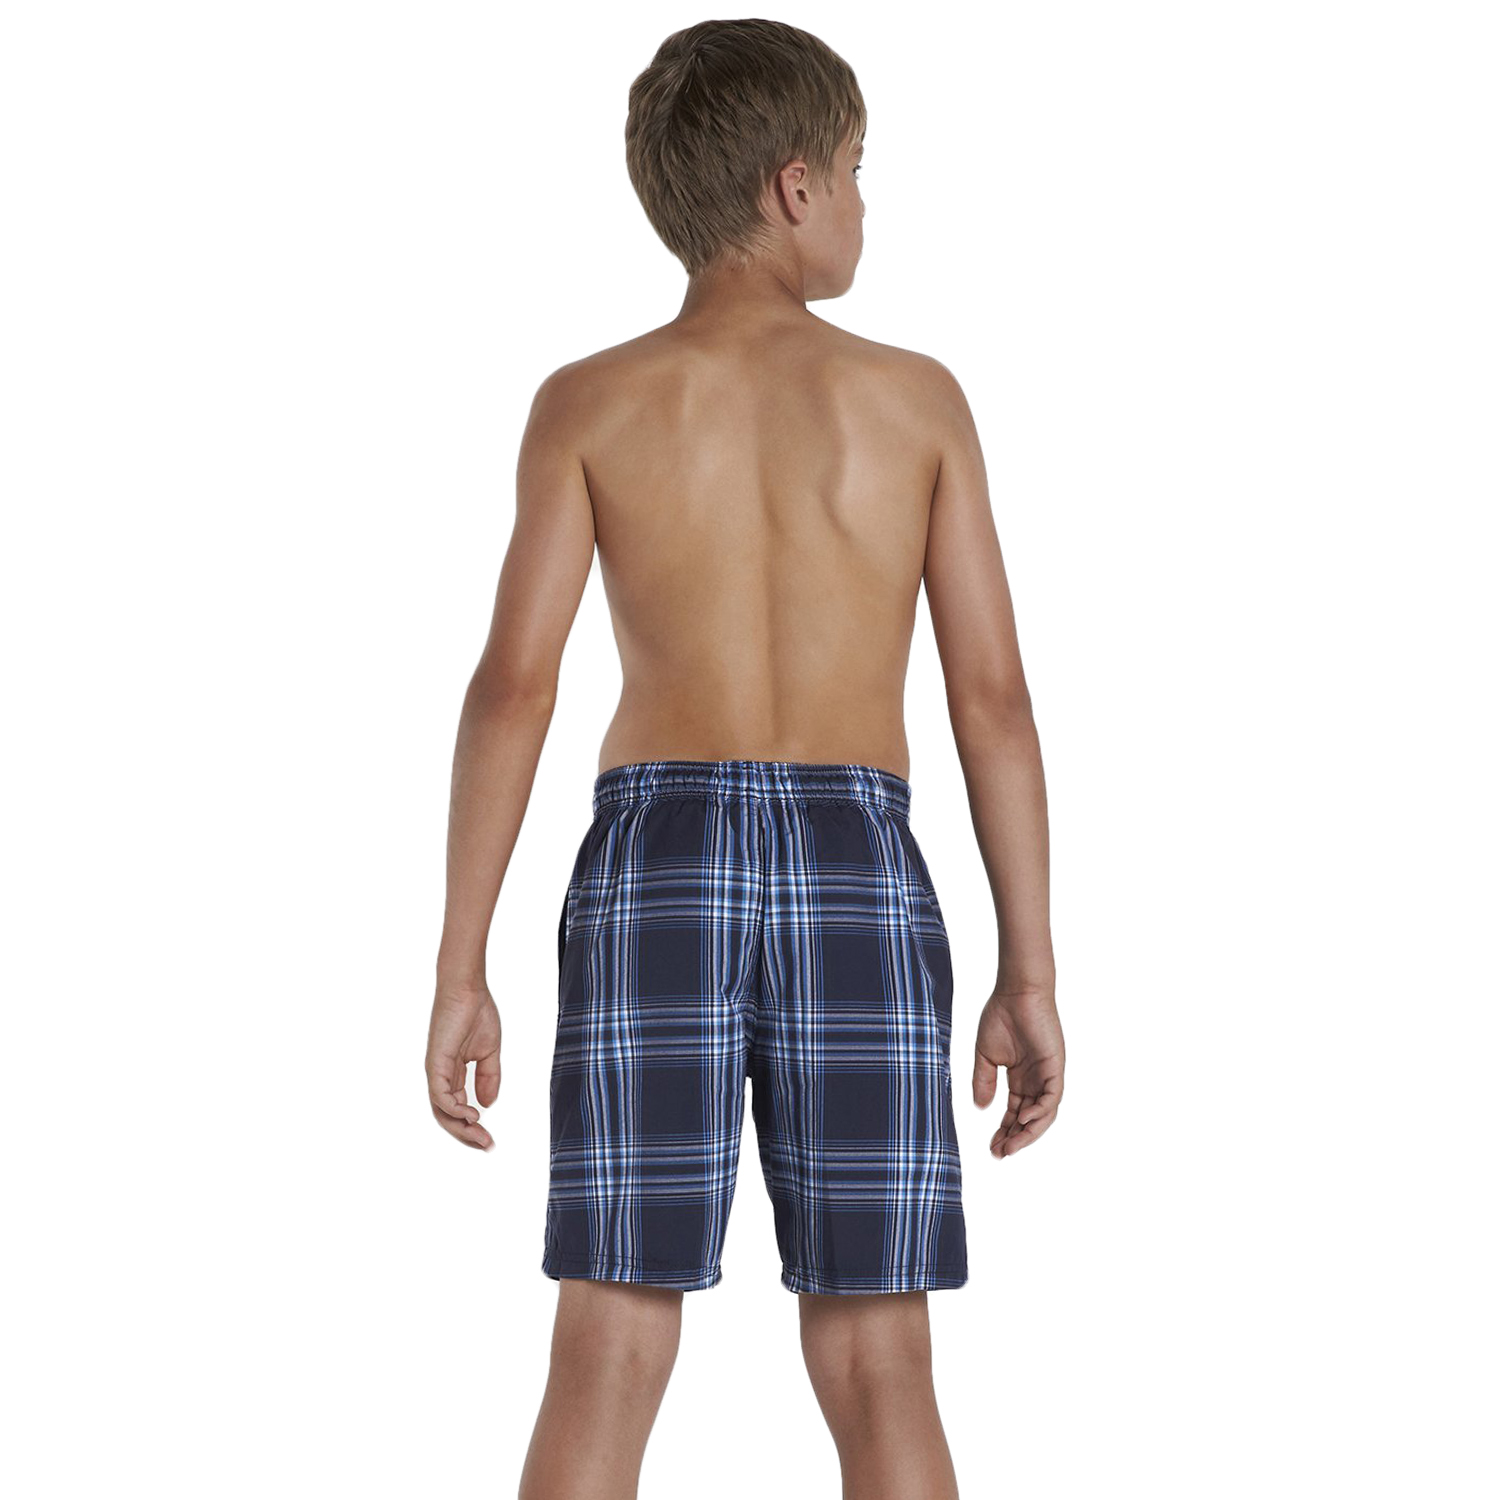 Boys' Swimwear. He'll hit the pool or beach in style with boys swimwear from Kohl's. Whether its boys swim trunks or boardshorts you're looking for, you'll find it in our large assortment of swimwear. For a sporty look, check out our line of boys' Under Armour swim trunks.